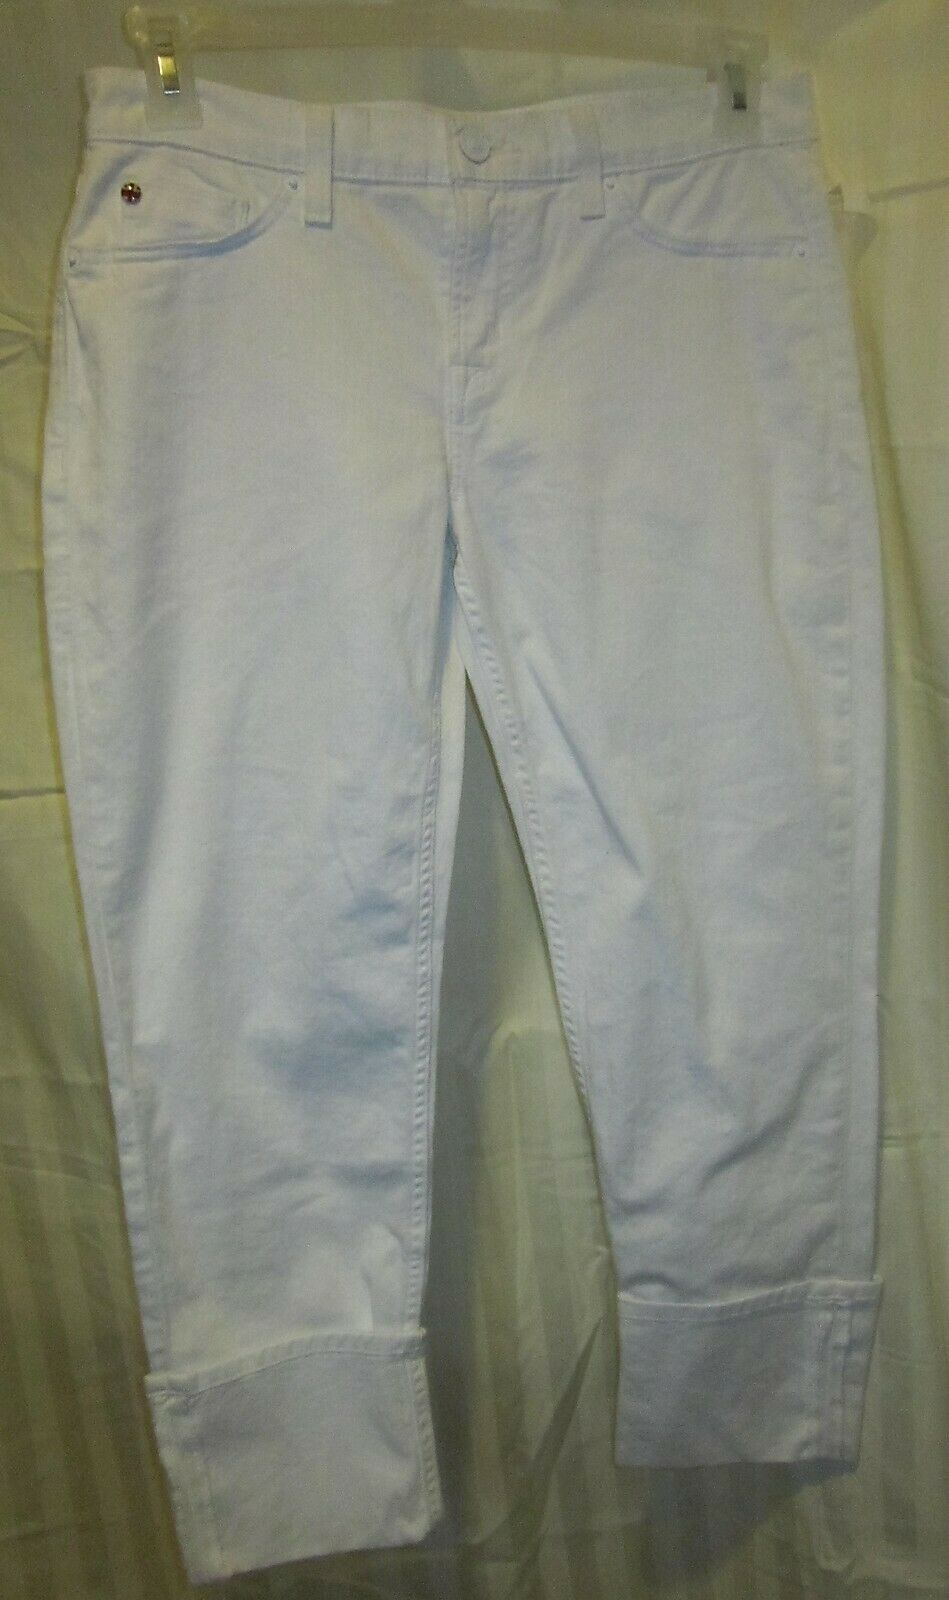 LADIES WHITE HUDSON CROP MUSE SKINNY WHITE PANTS WITH 5  CUFF NWTGS  170